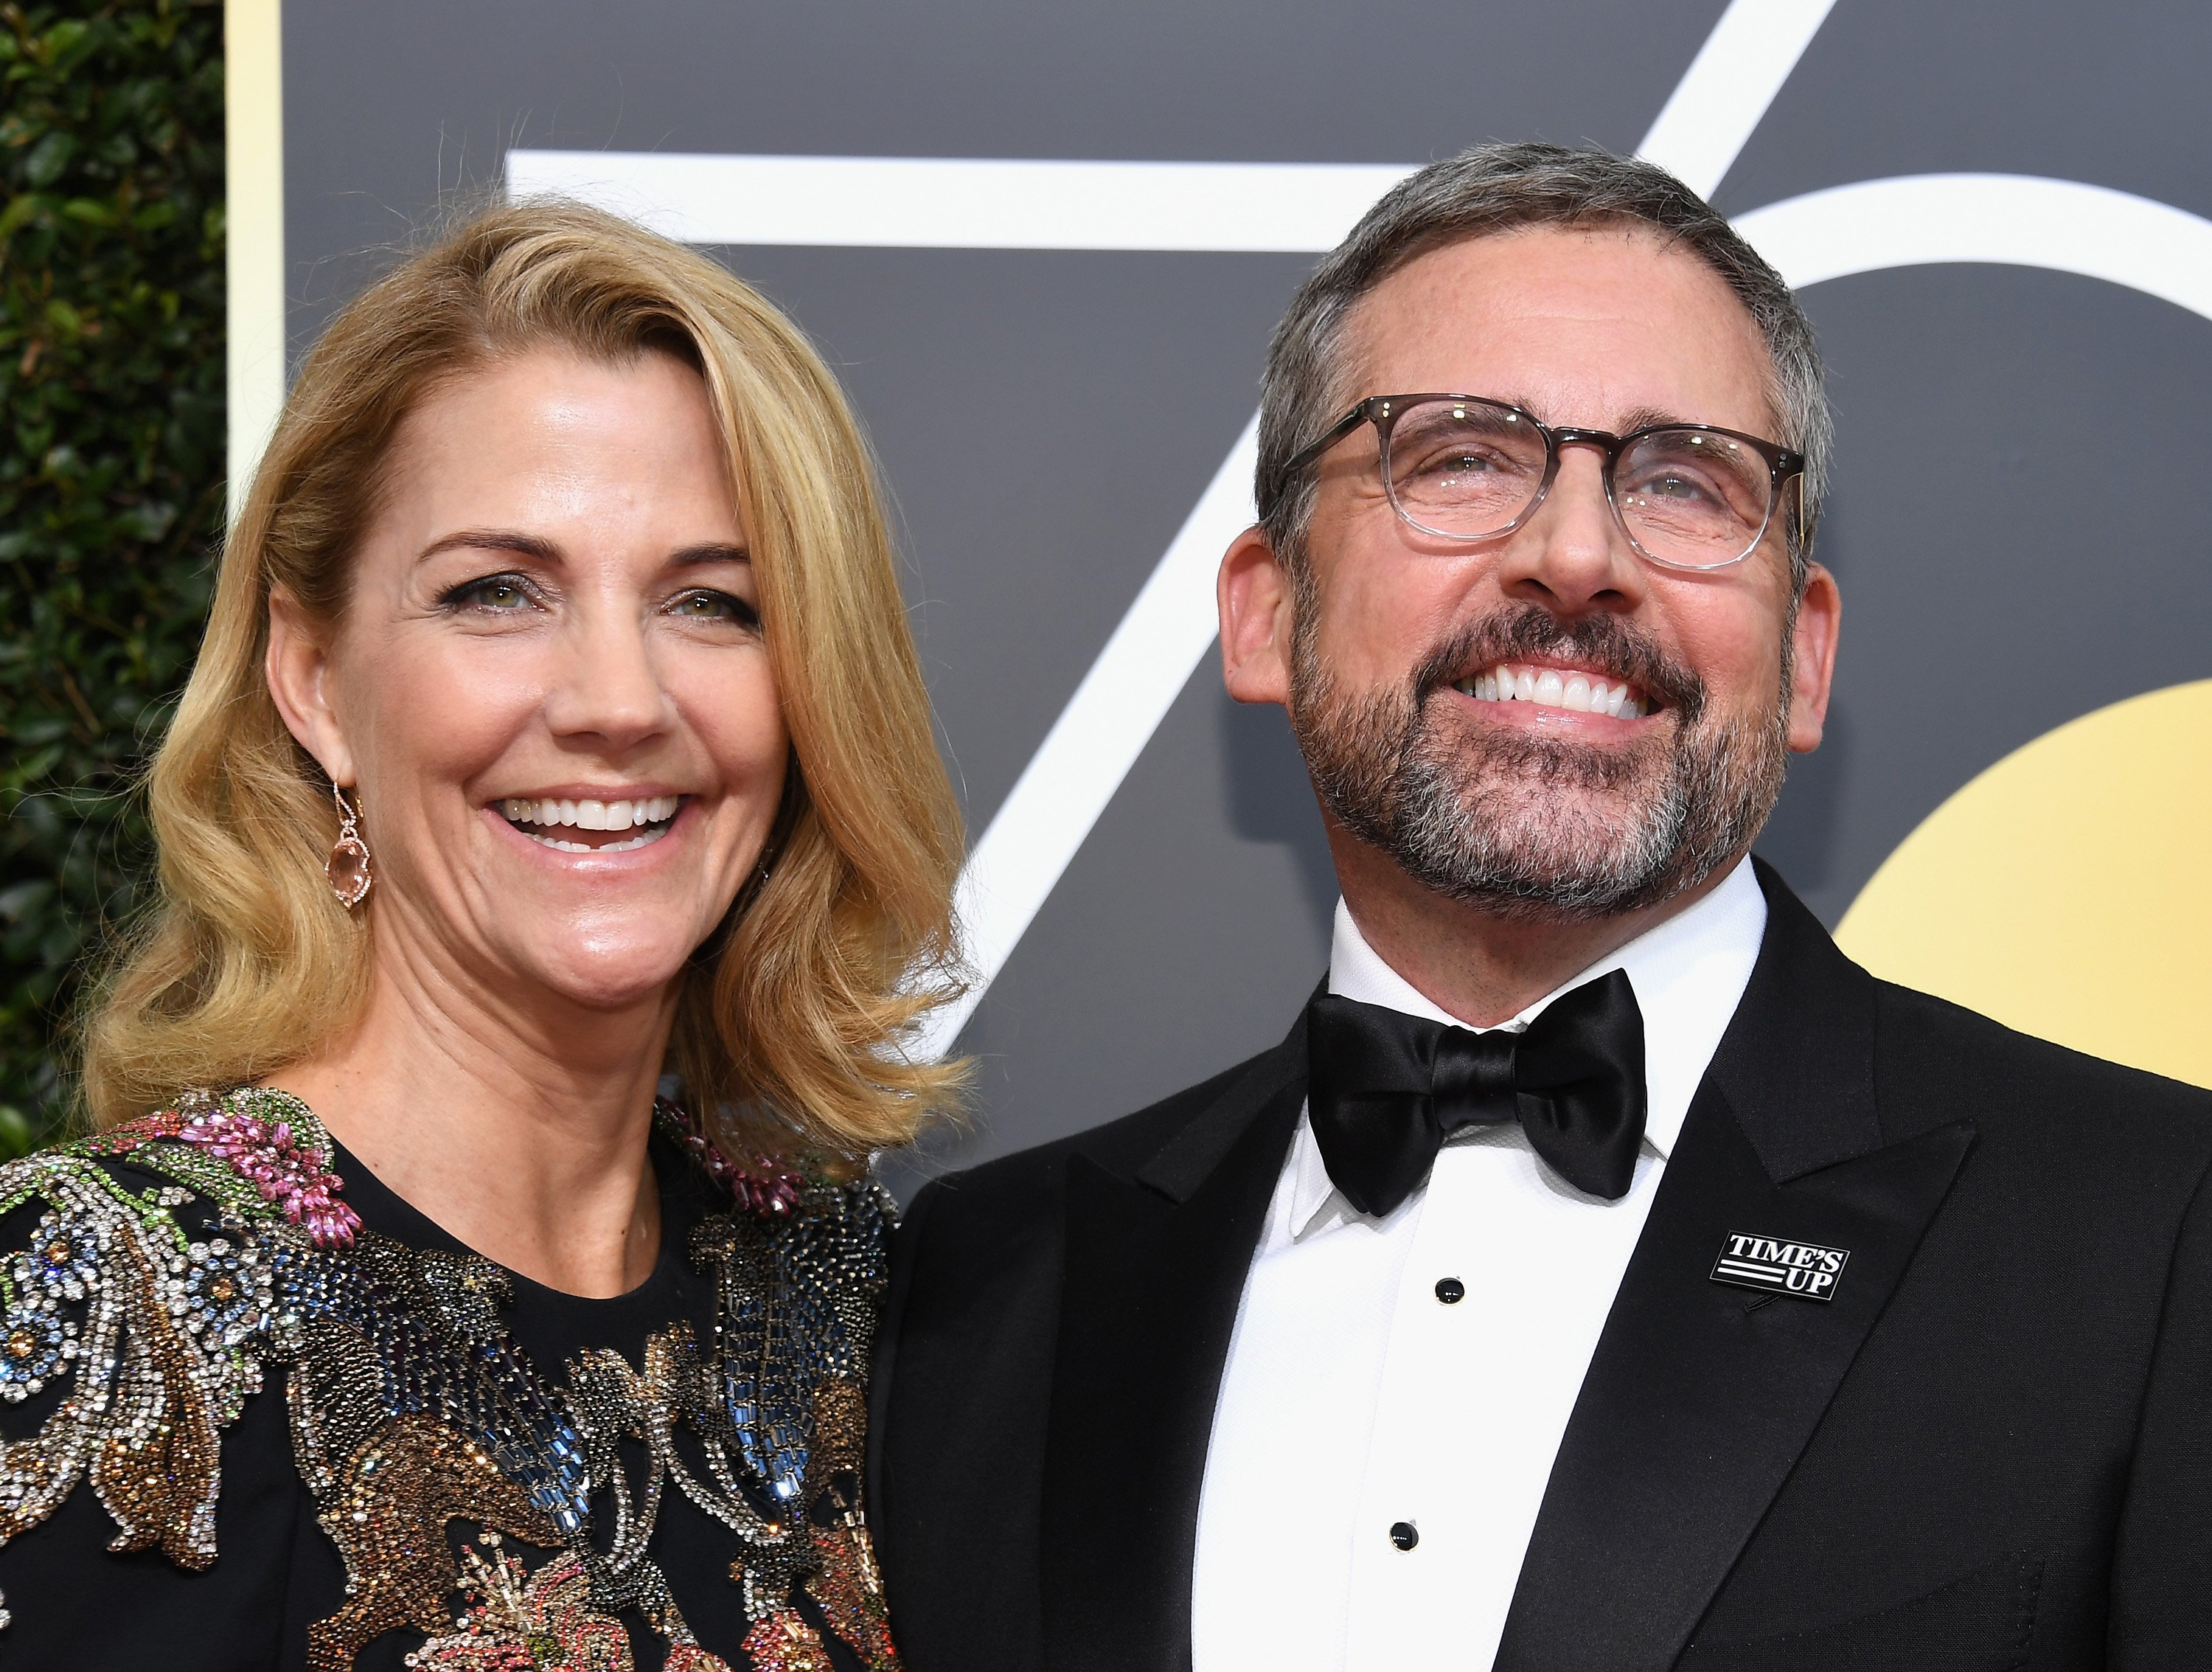 Steve Carell S Wife Nancy Was His Student Meet The Actor S Spouse And Mom Of His Two Kids Steve carell est un acteur au pouvoir comique irrésistible. steve carell s wife nancy was his